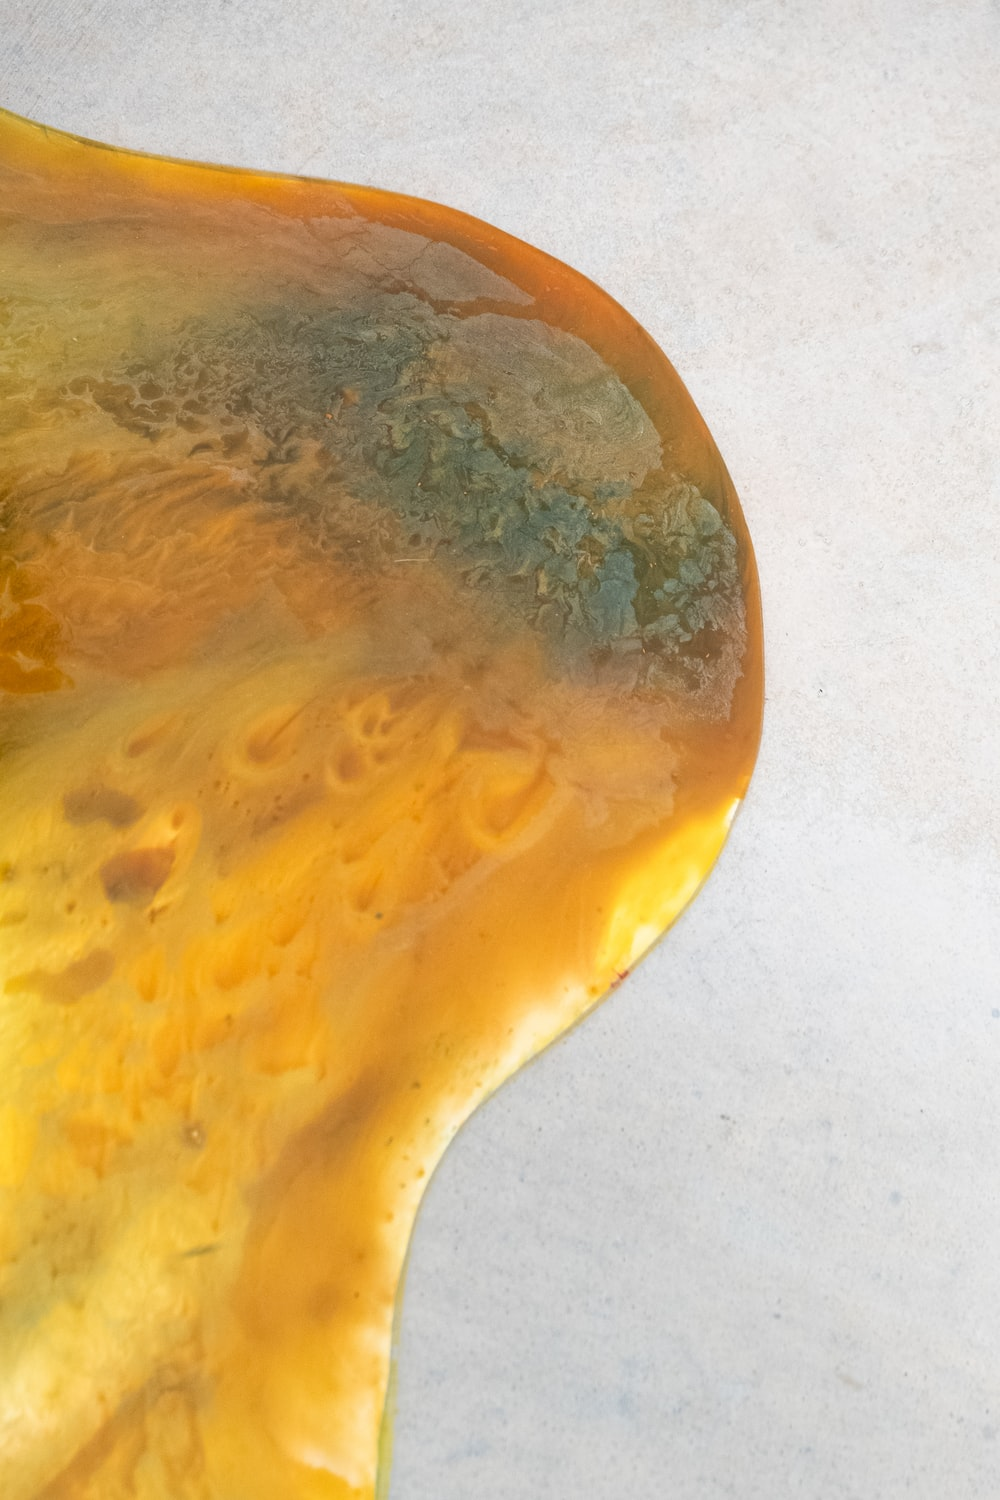 gold liquid on white surface